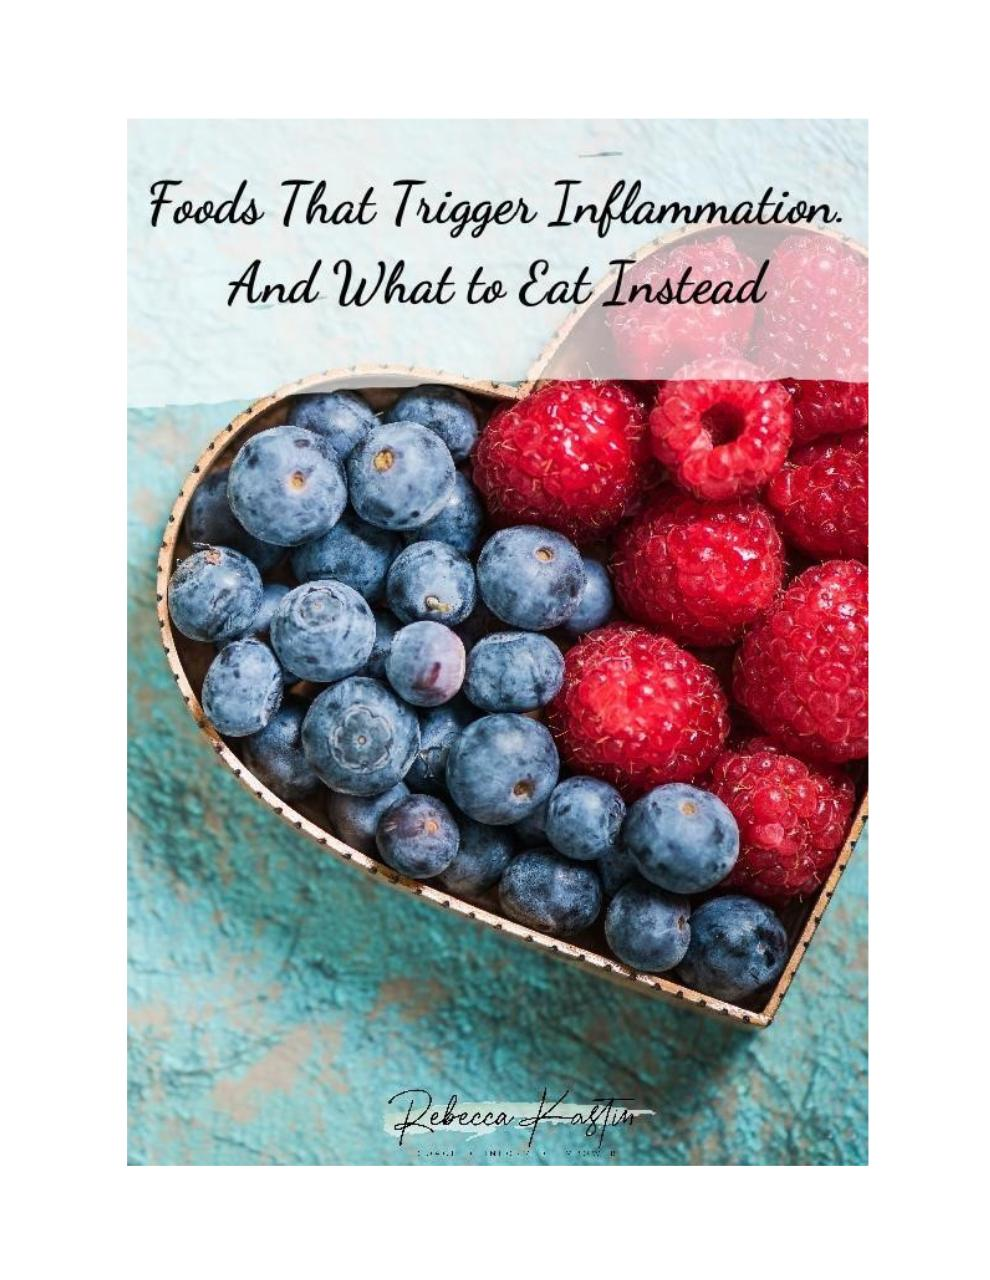 Foods That Trigger Inflamation and What To Eat Instead.pdf - page 1/6